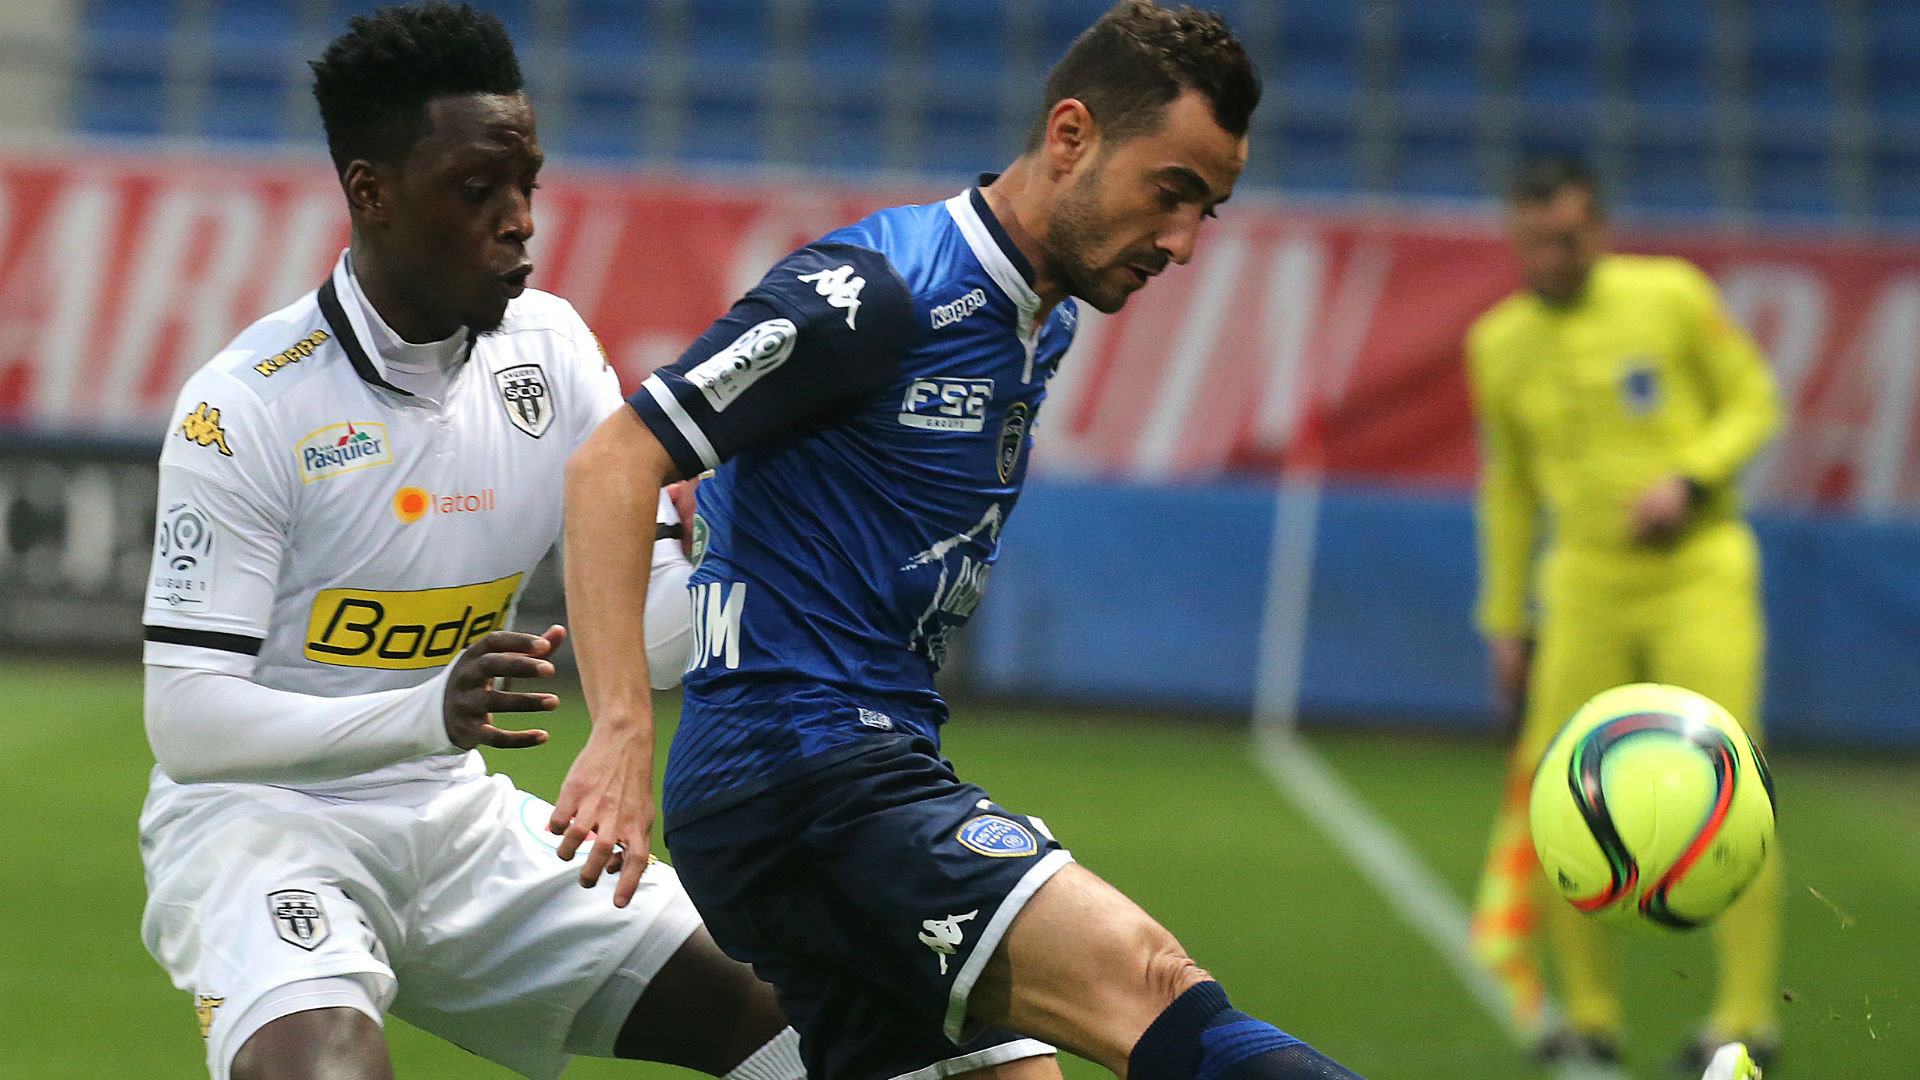 troyes 0 - 1 angers r u00e9sum u00e9 du match 02  04  16 ligue 1